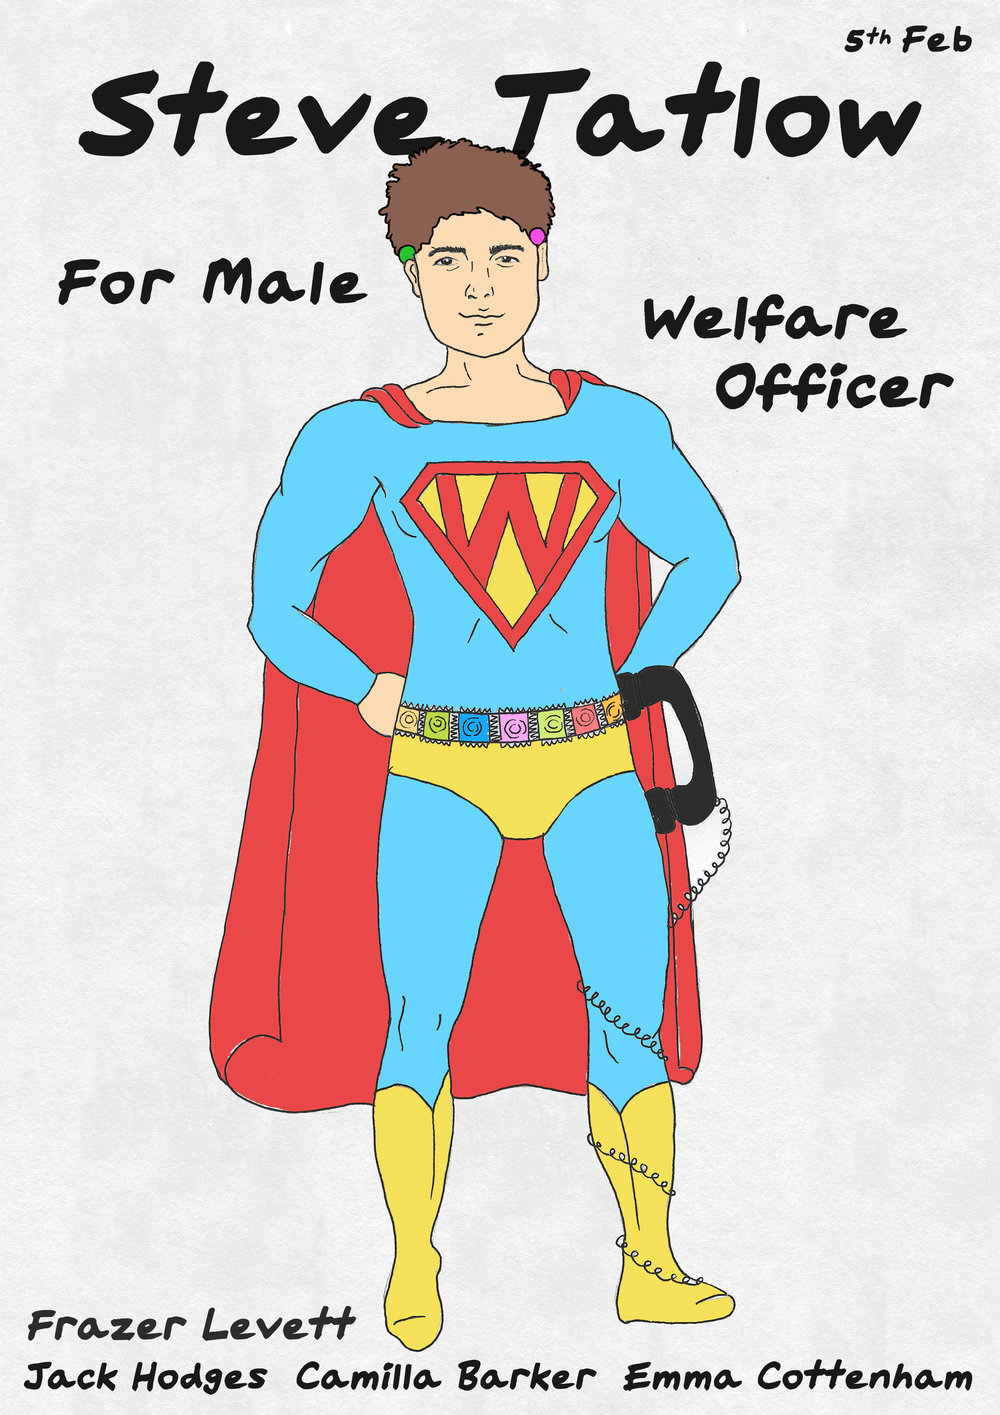 welfareOfficerPoster.jpg